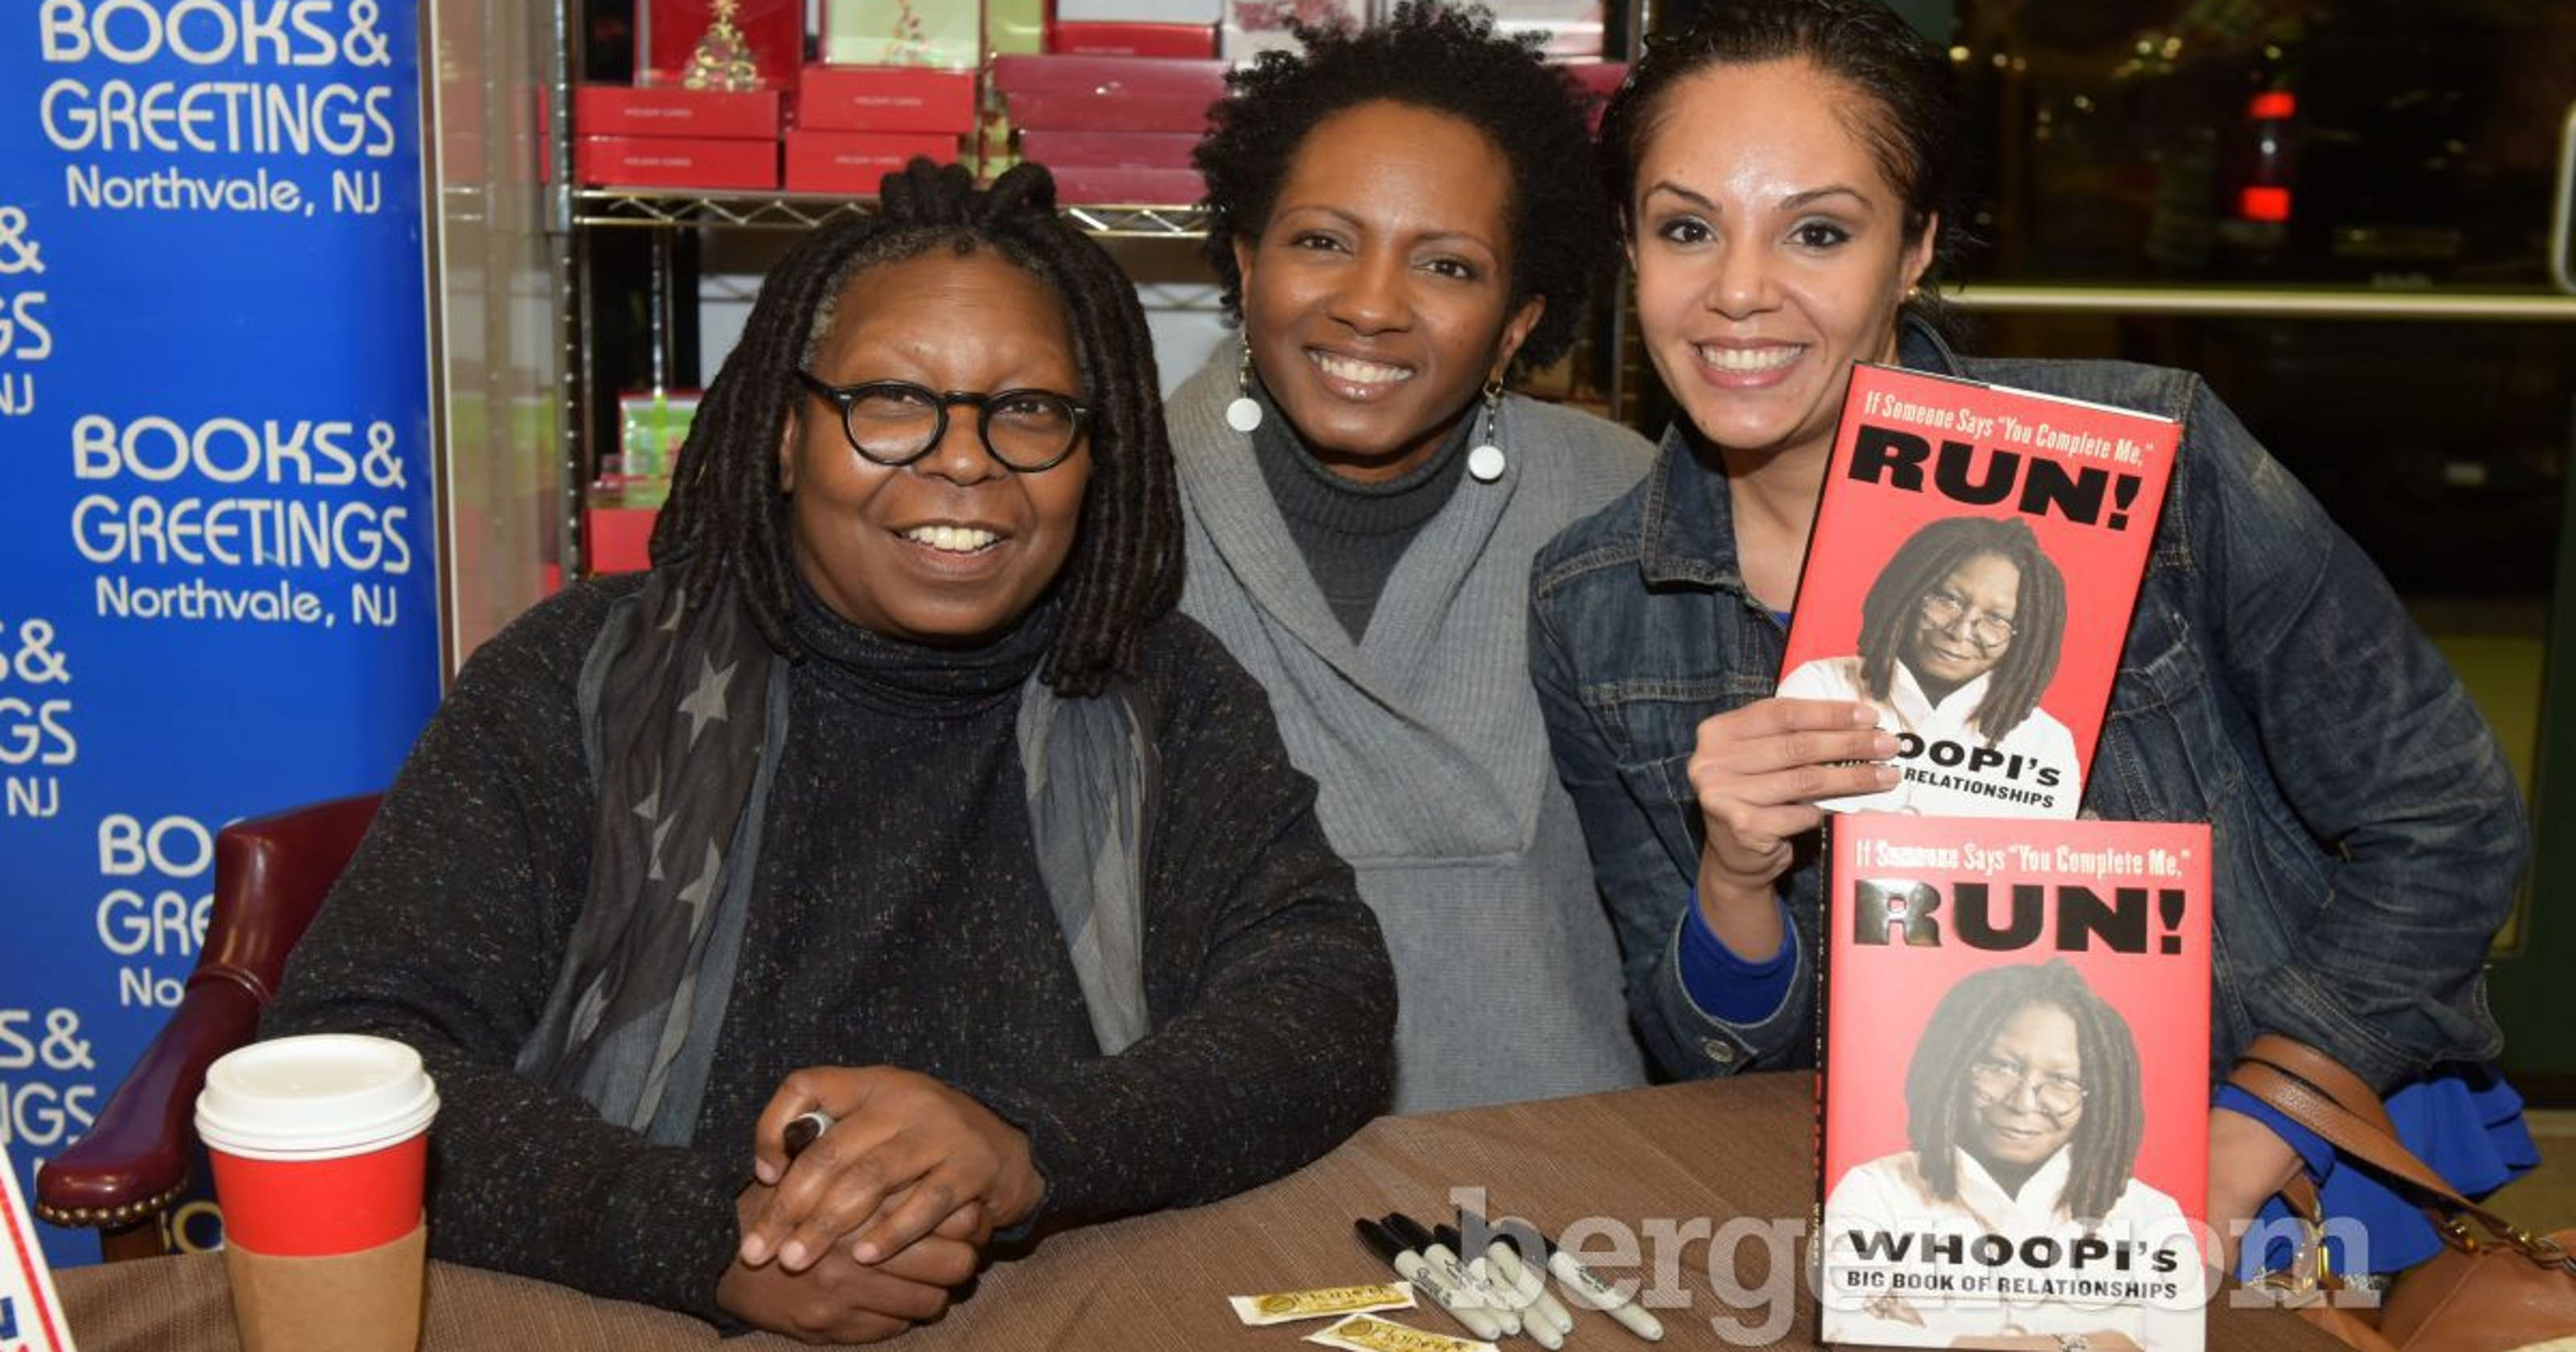 Whoopi Goldberg Meets Fans For Signing Event At Books And Greetings